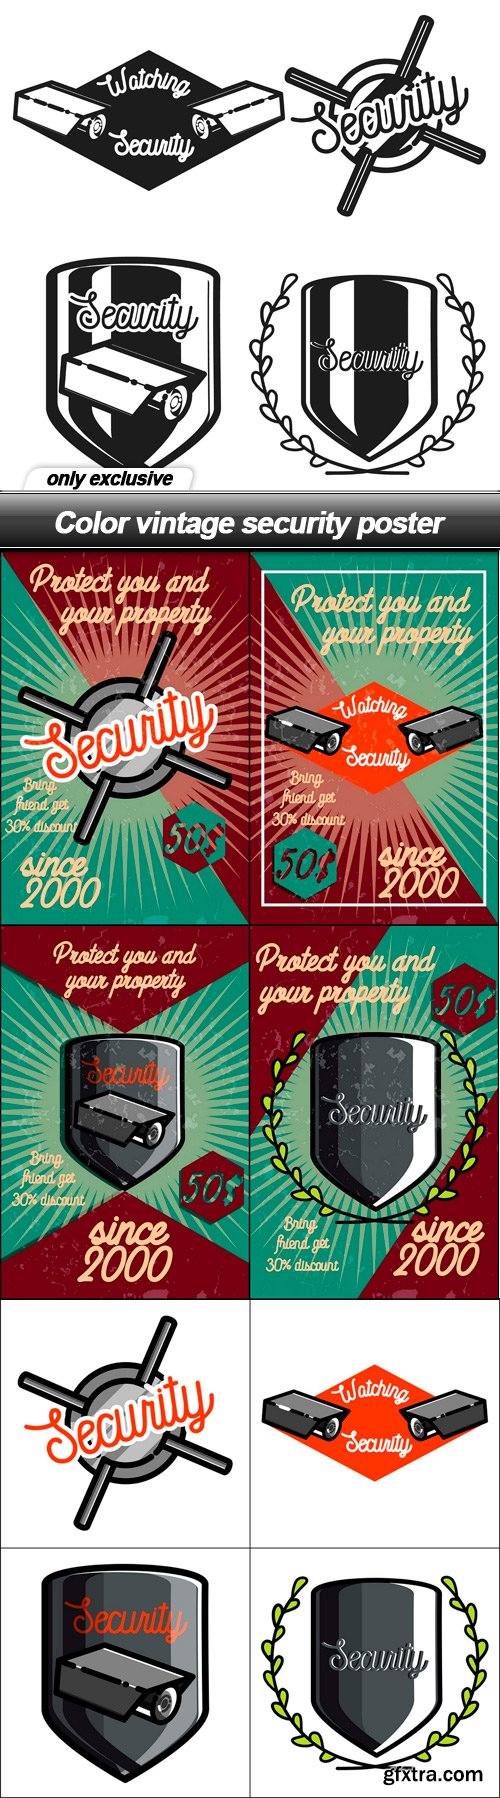 Color vintage security poster - 9 EPS